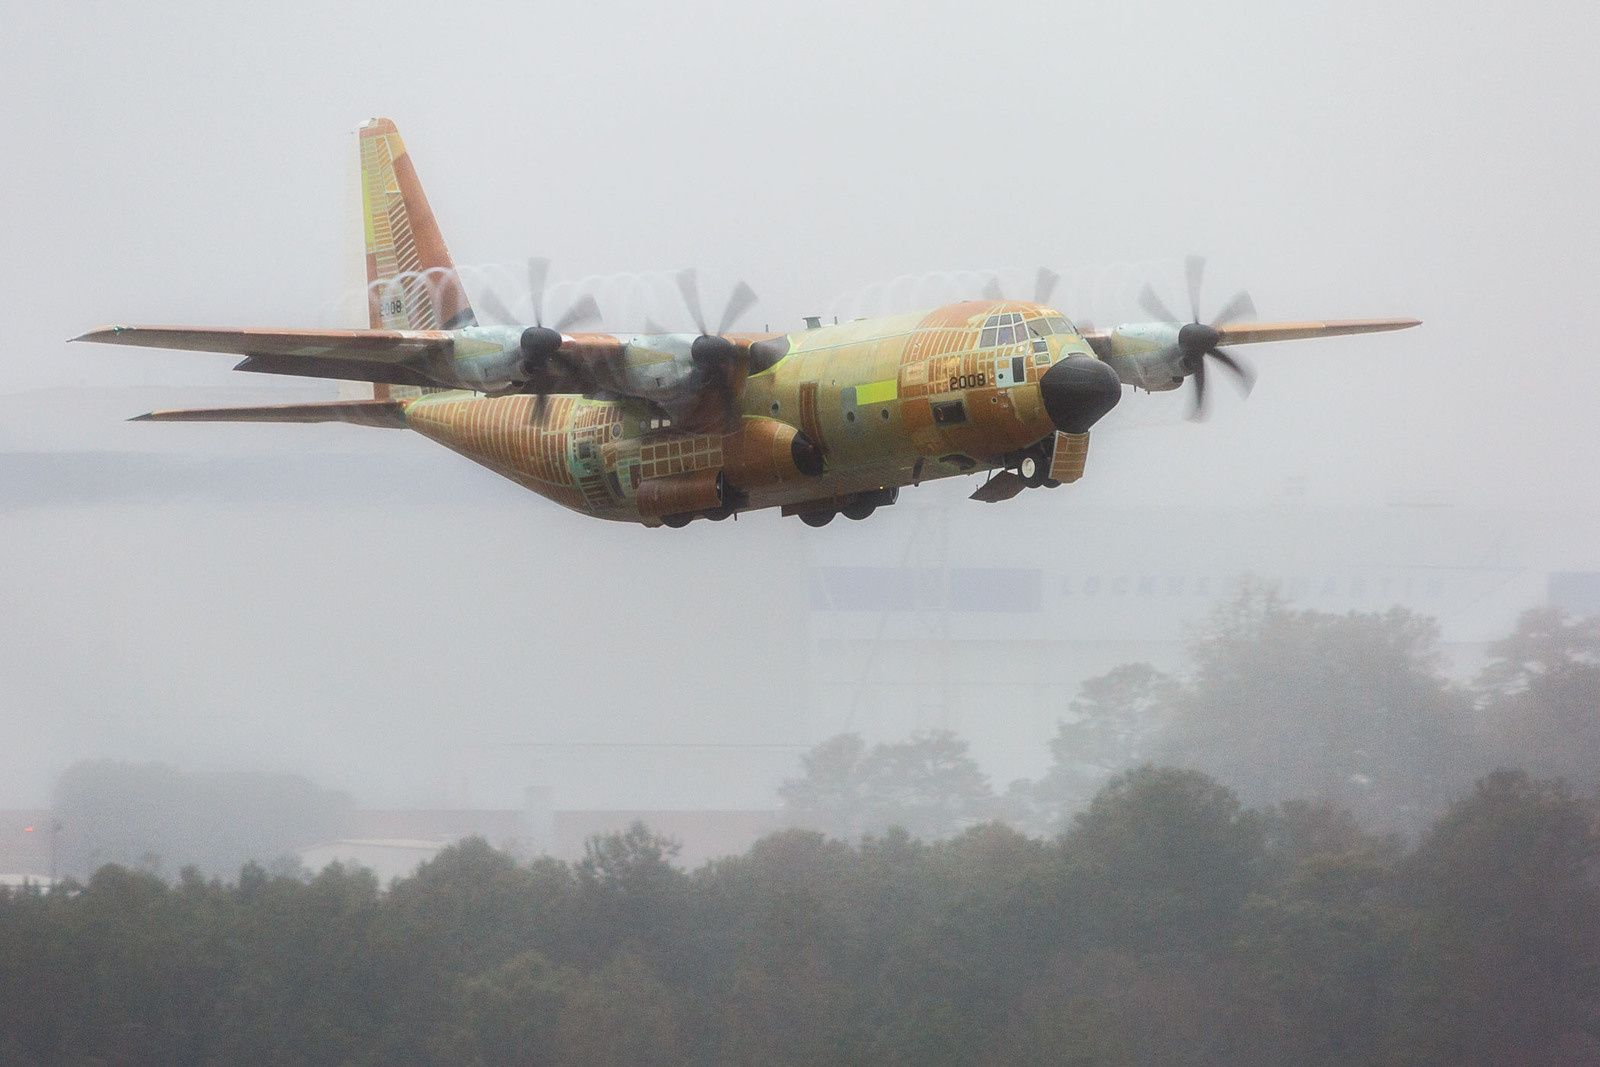 USCG HC-130J long-range search and rescue aircraft photo Andrew McMurtrie LM